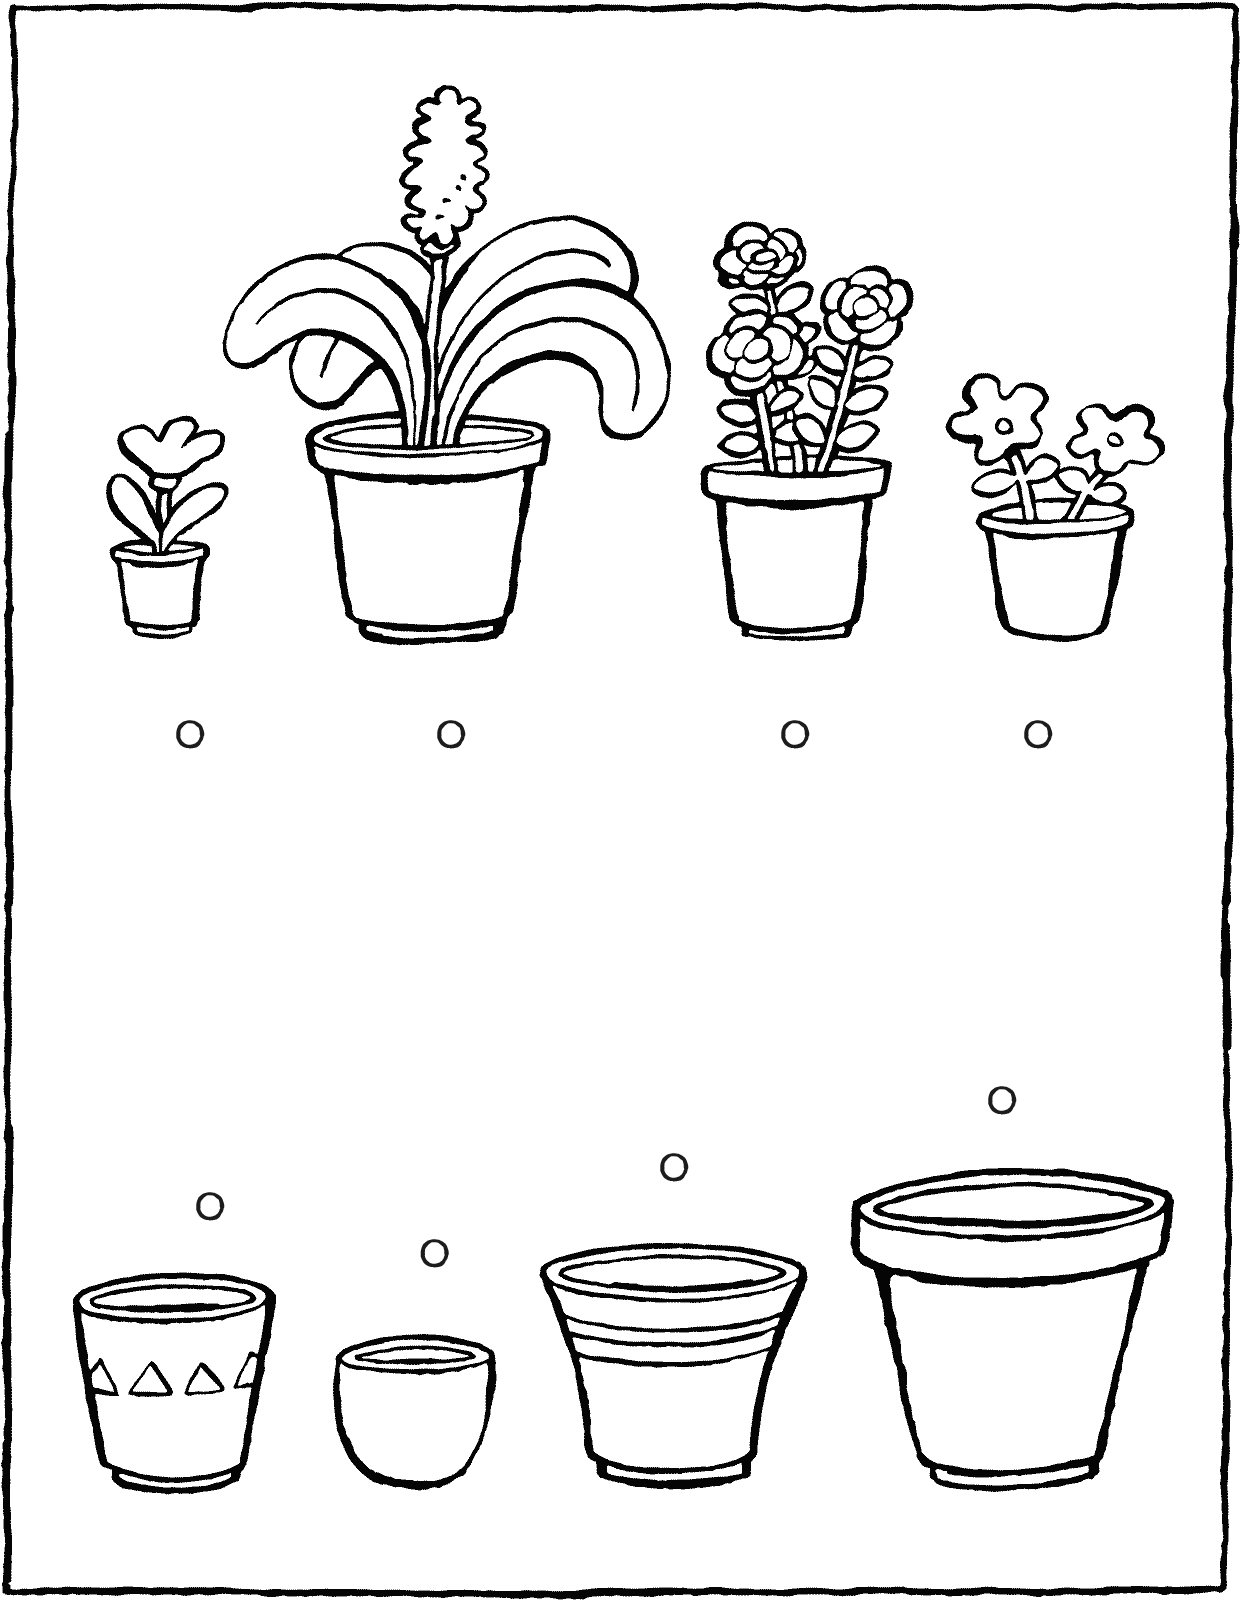 games observation which plant fits in which pot colouring page drawing picture 01V